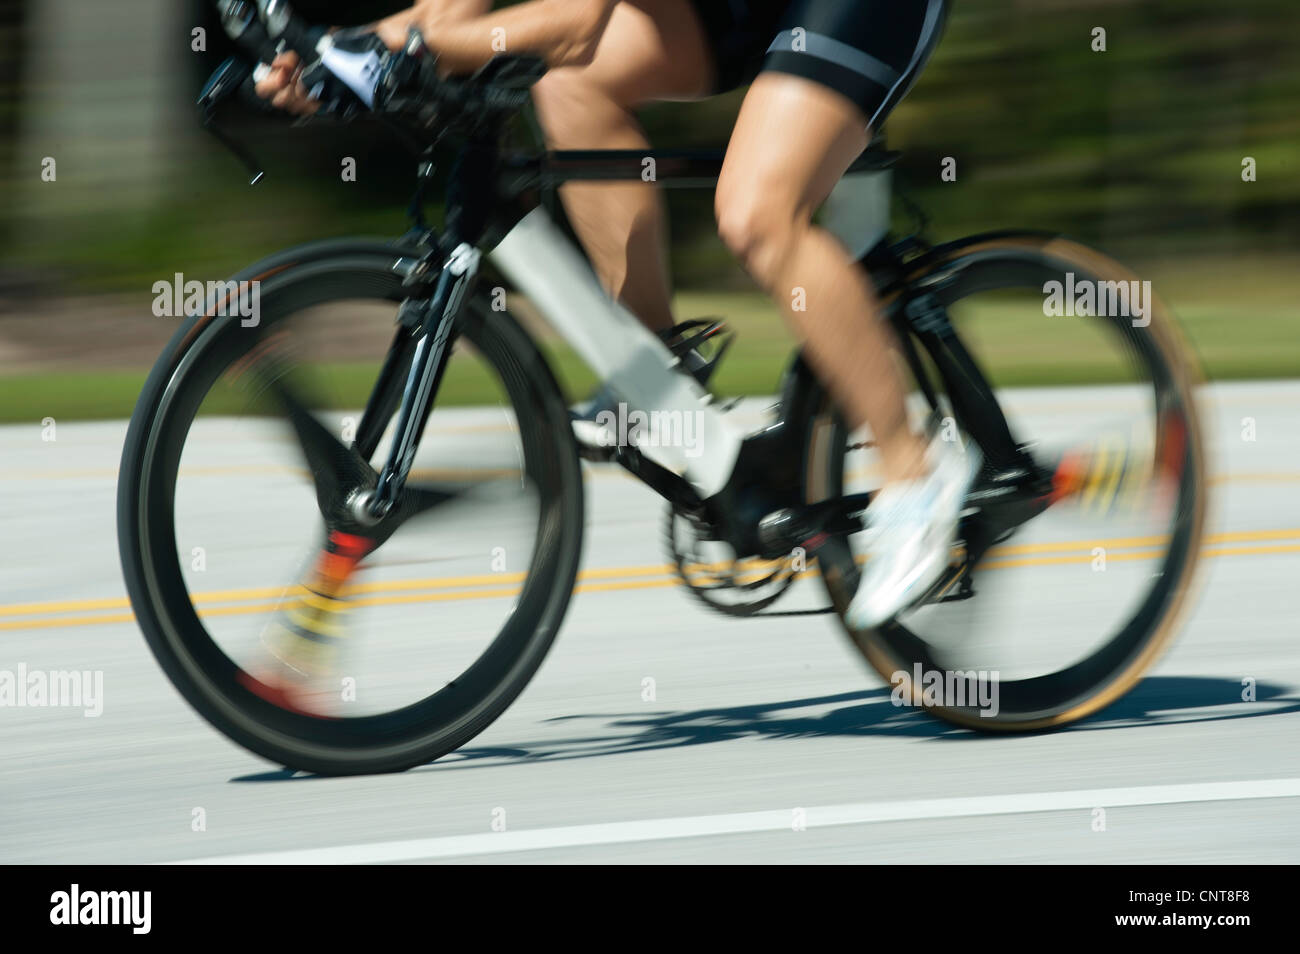 Woman riding road bike, low section - Stock Image